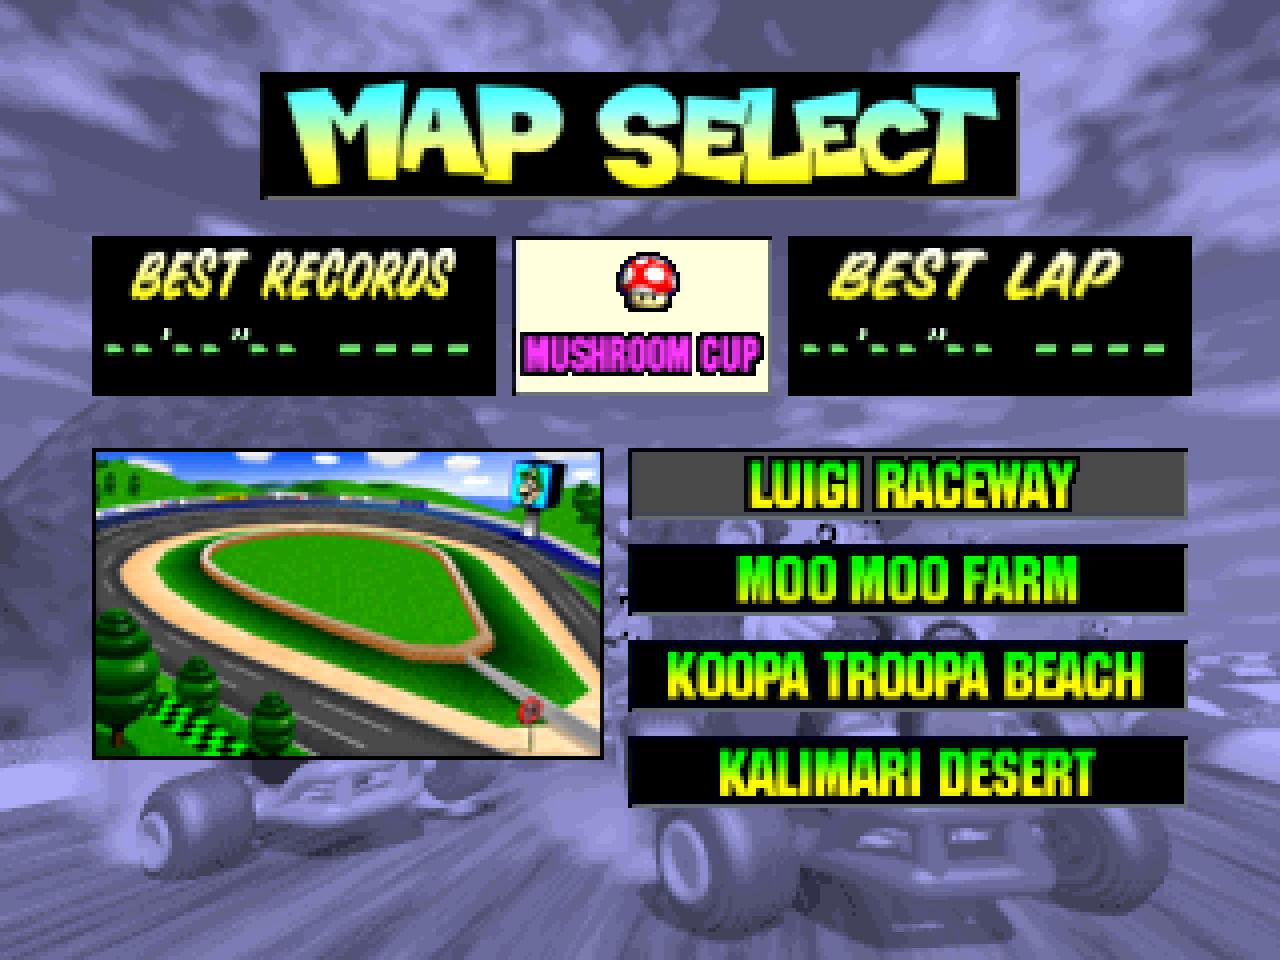 https://s3.eu-west-3.amazonaws.com/games.anthony-dessalles.com/Mario Kart 64 N64 2020 - Screenshots/Mario Kart 64-201118-215806.png